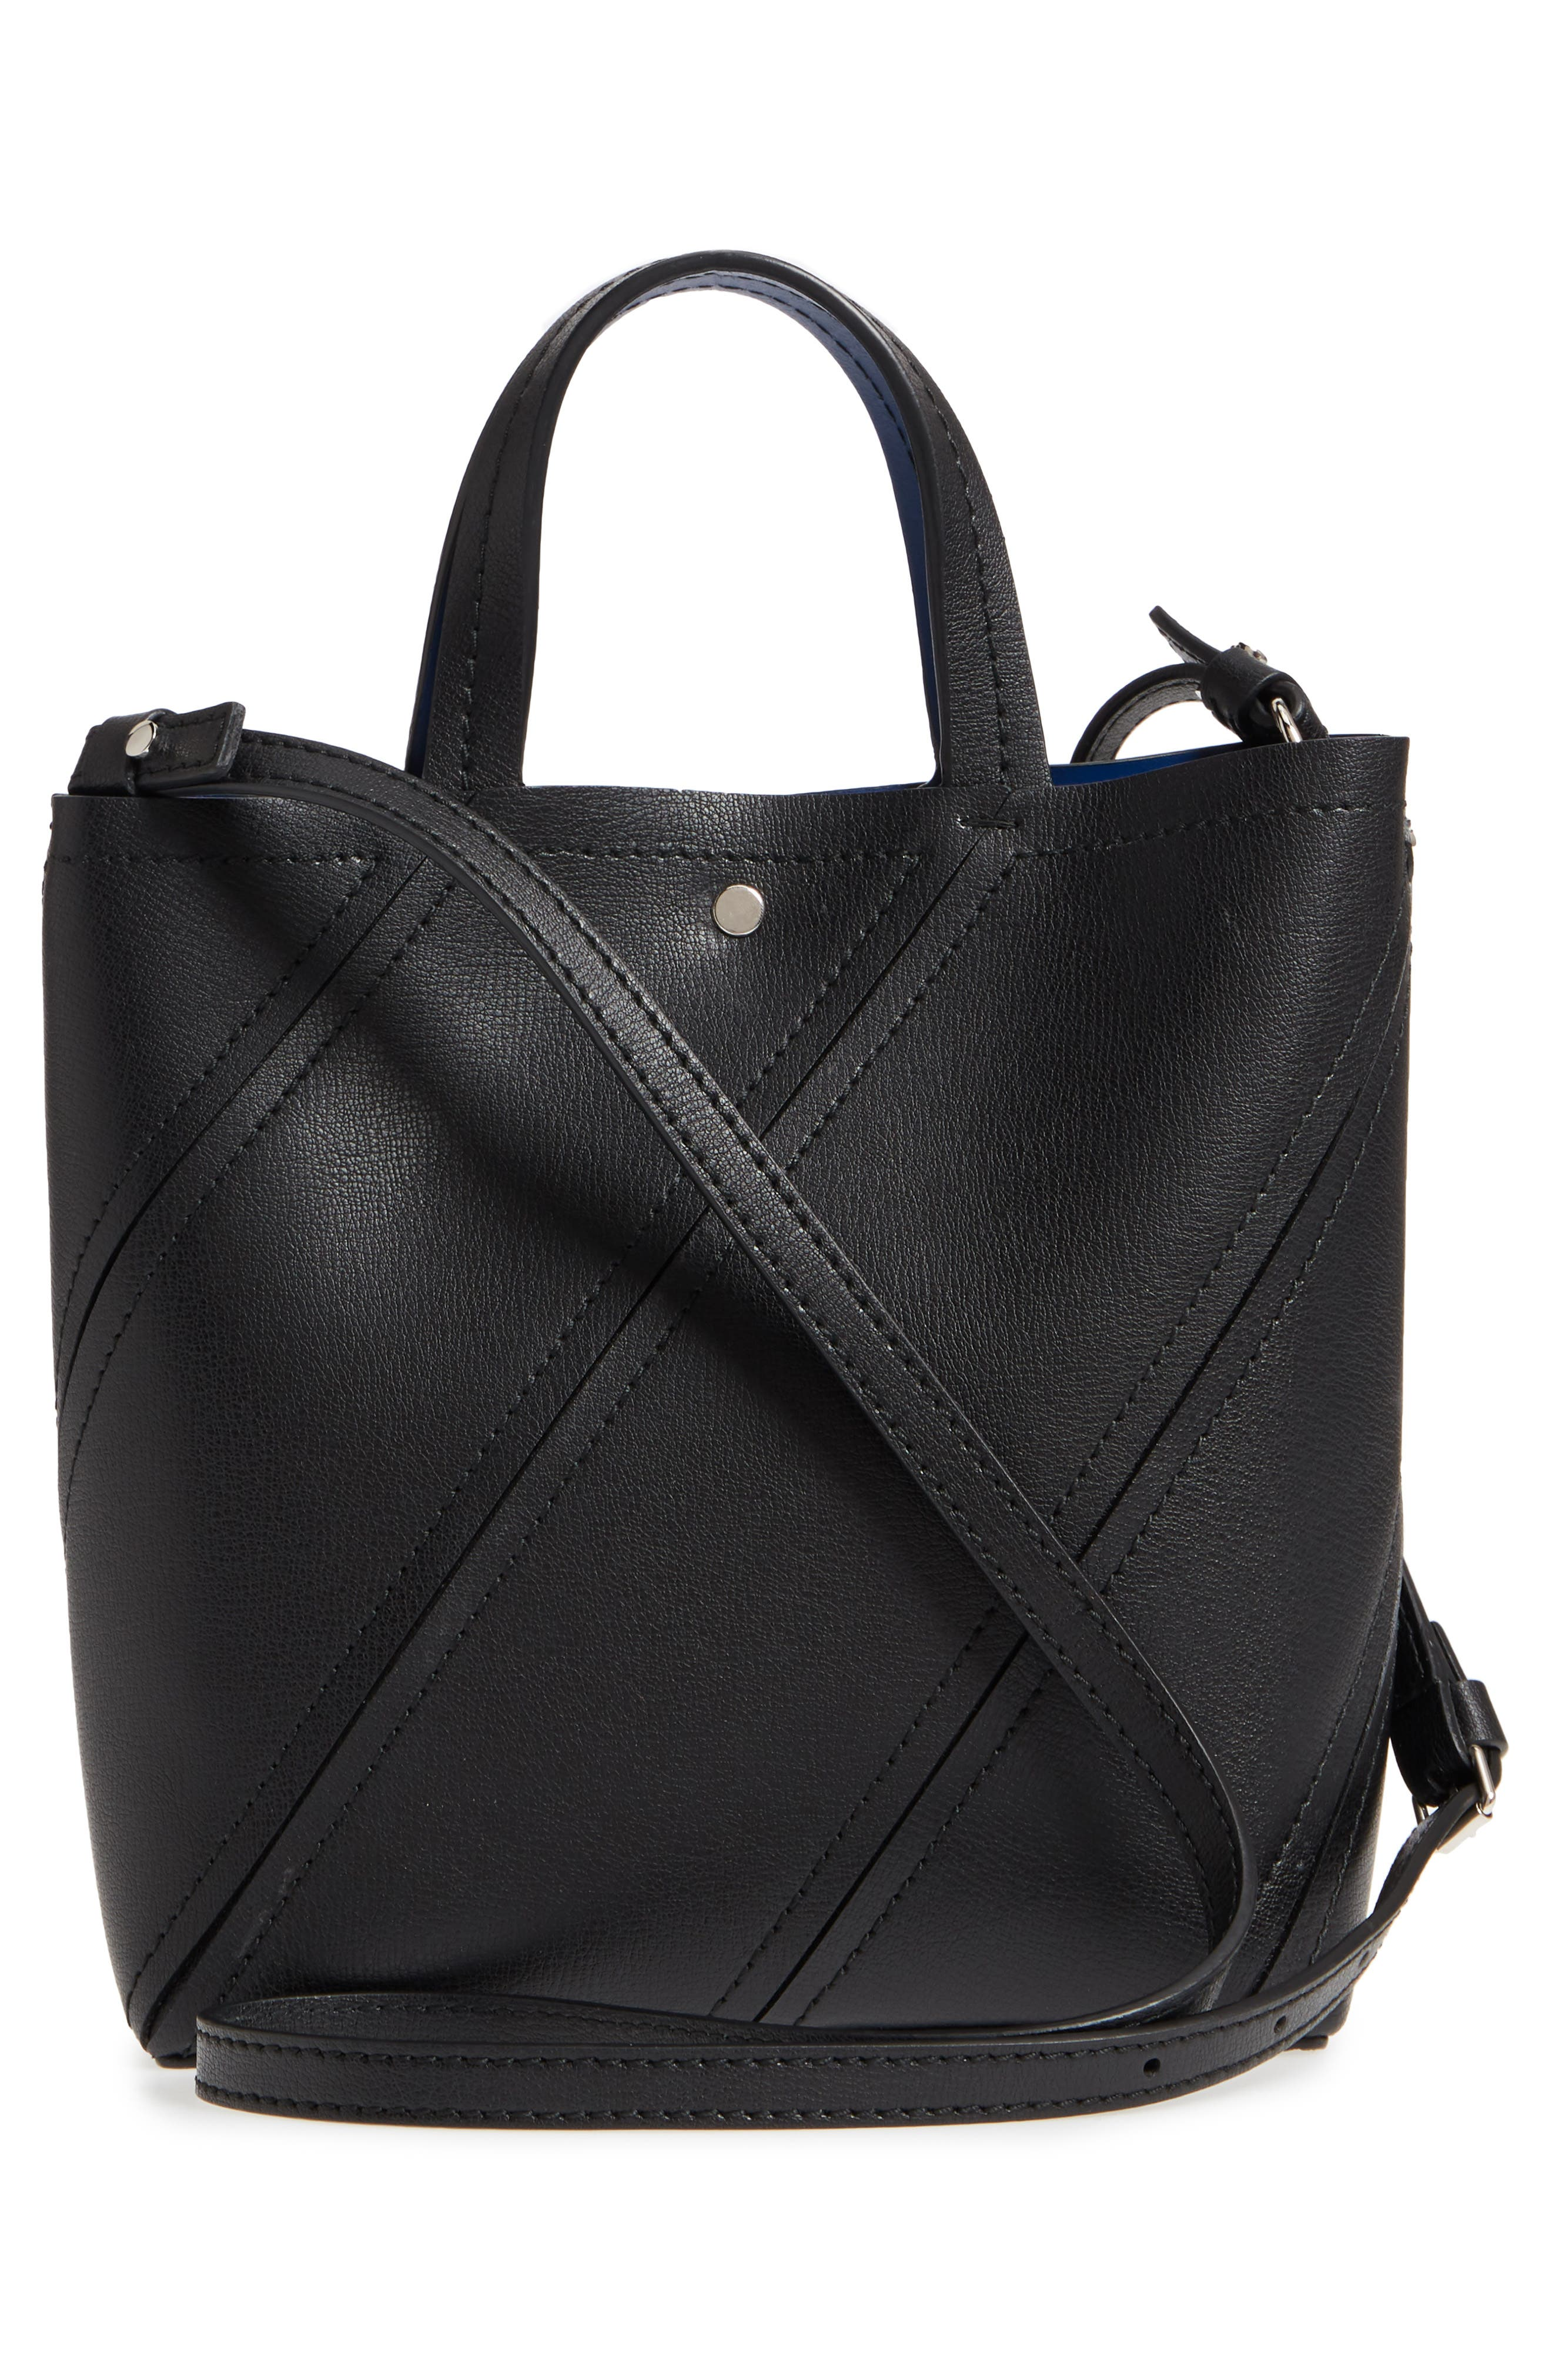 PROENZA SCHOULER, Mini Hex Whipstitch Calfskin Leather Tote, Alternate thumbnail 3, color, BLACK